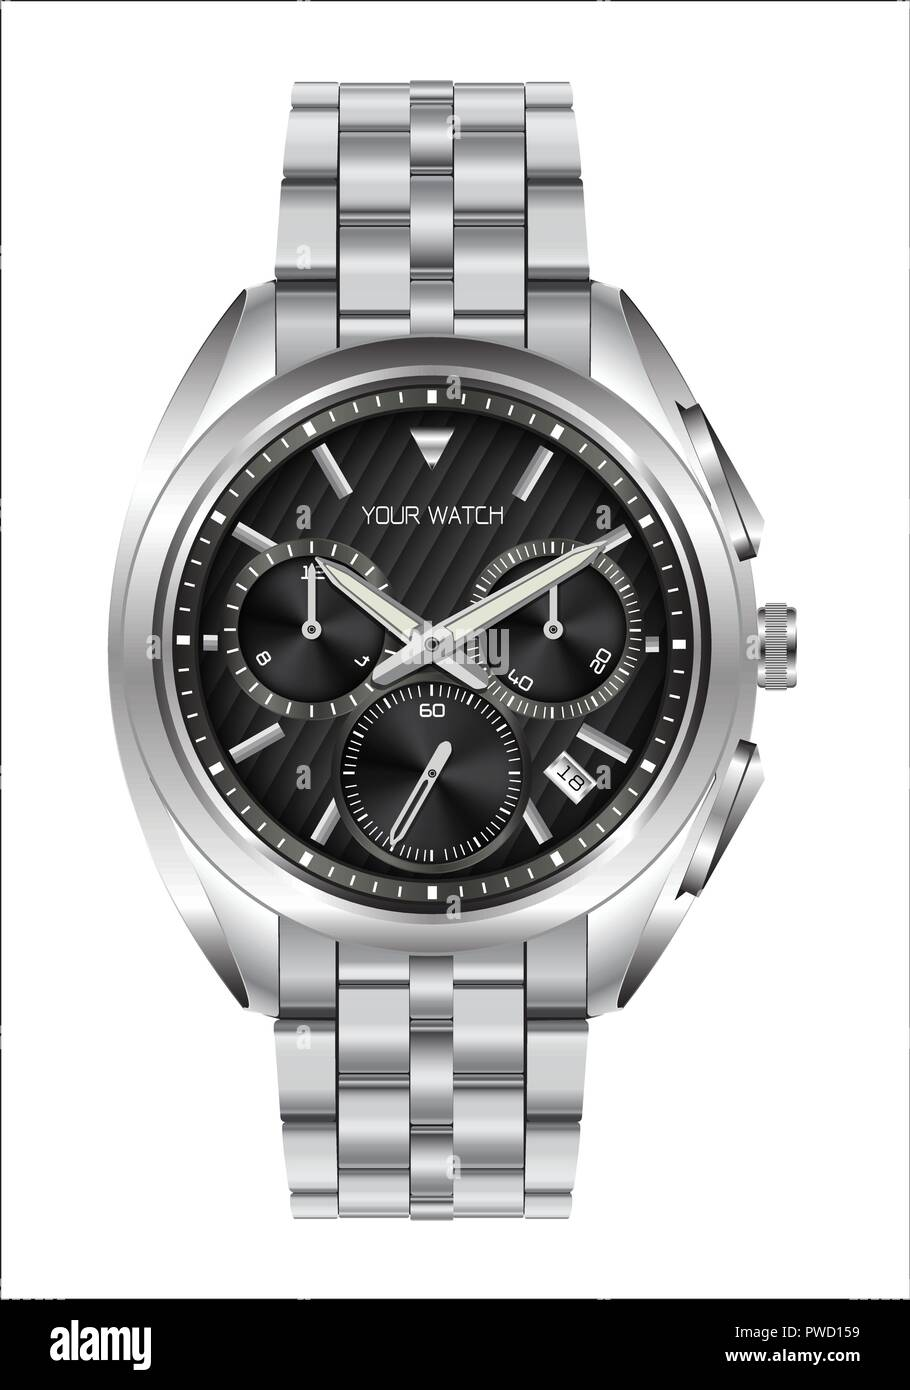 Realistic clock watch stainless steel black face luxury for men on white background vector illustration. - Stock Image